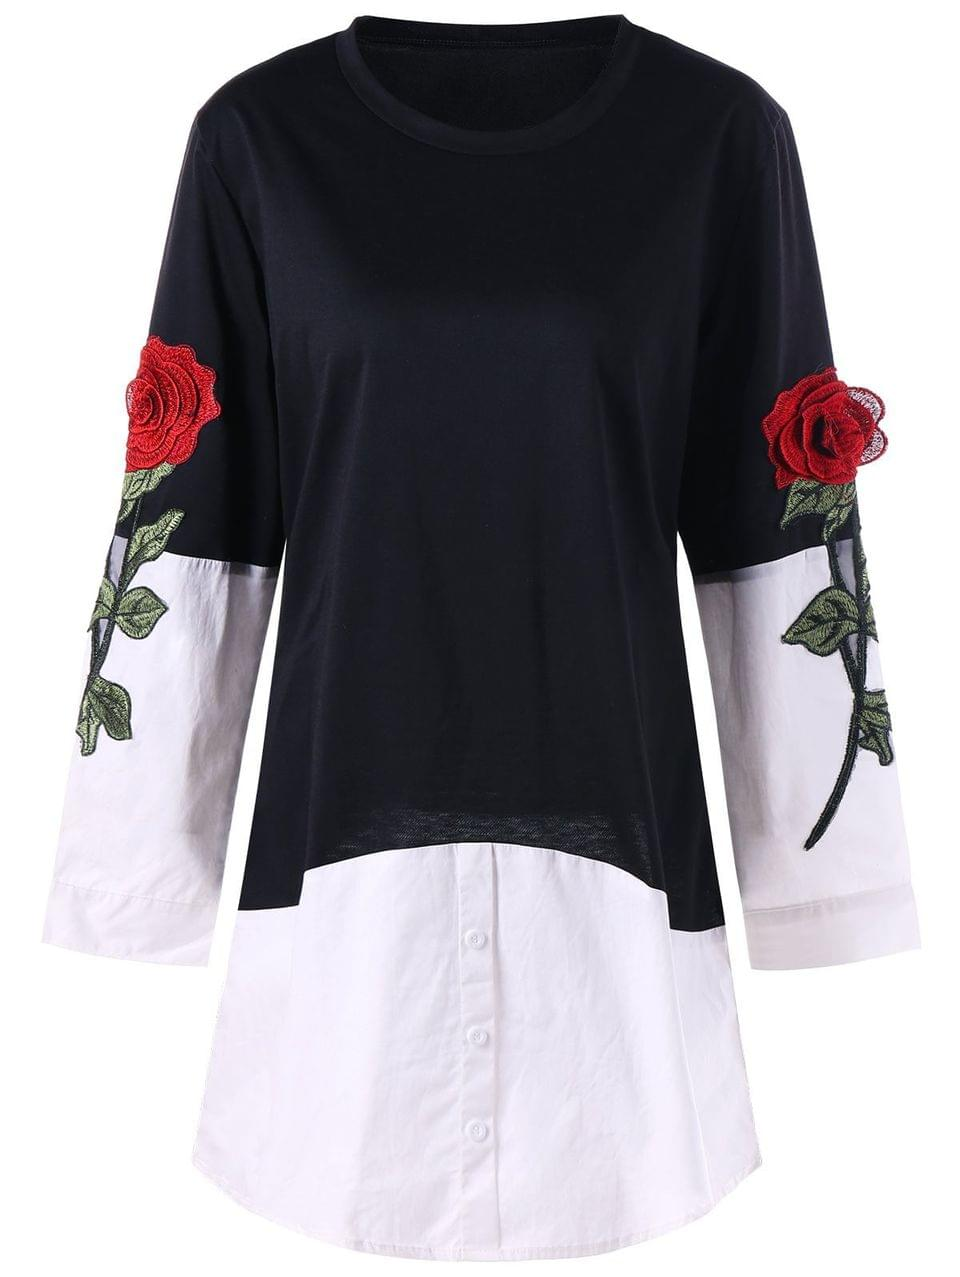 Women's Rose Applique Contrast Shirt Hem Longline Top - Black M